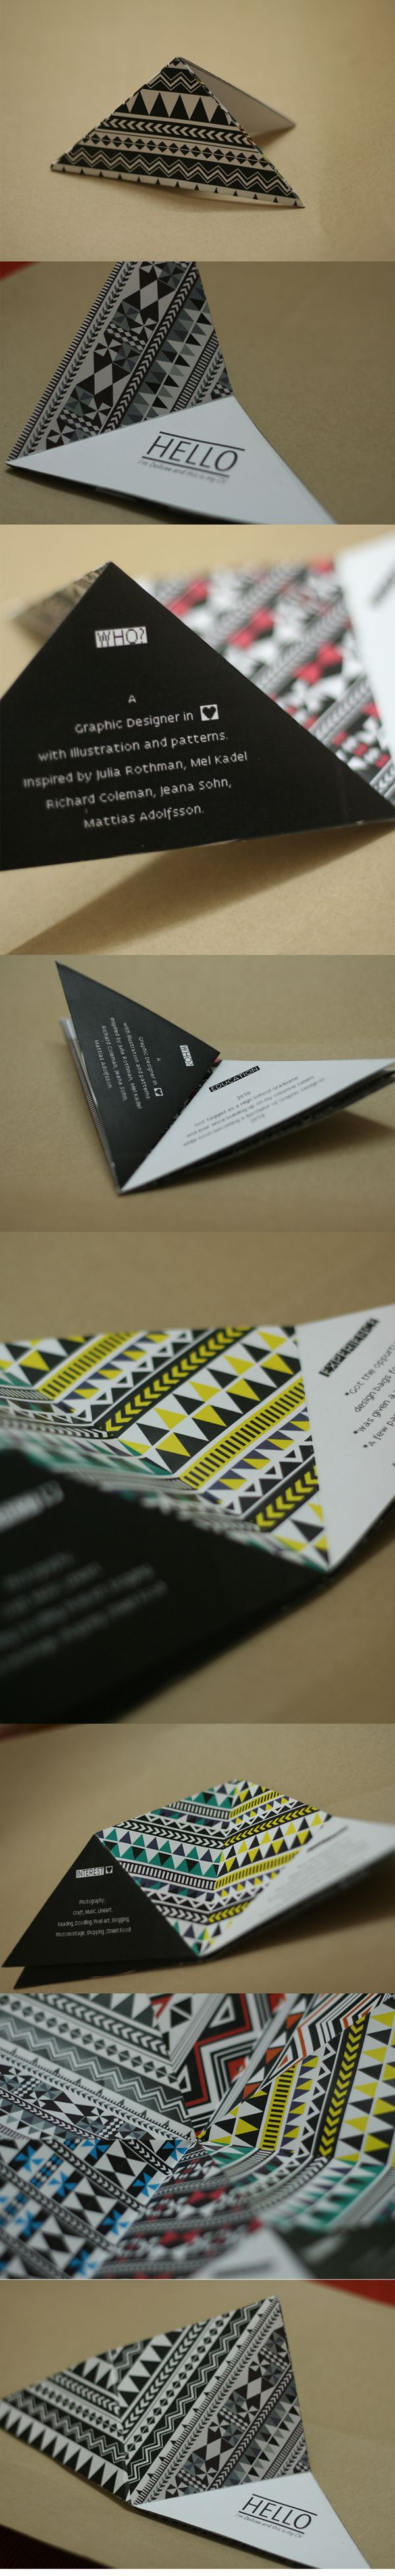 .: Give-away Resume/ Visiting Card :. by Dollcee Khattar, via Behance